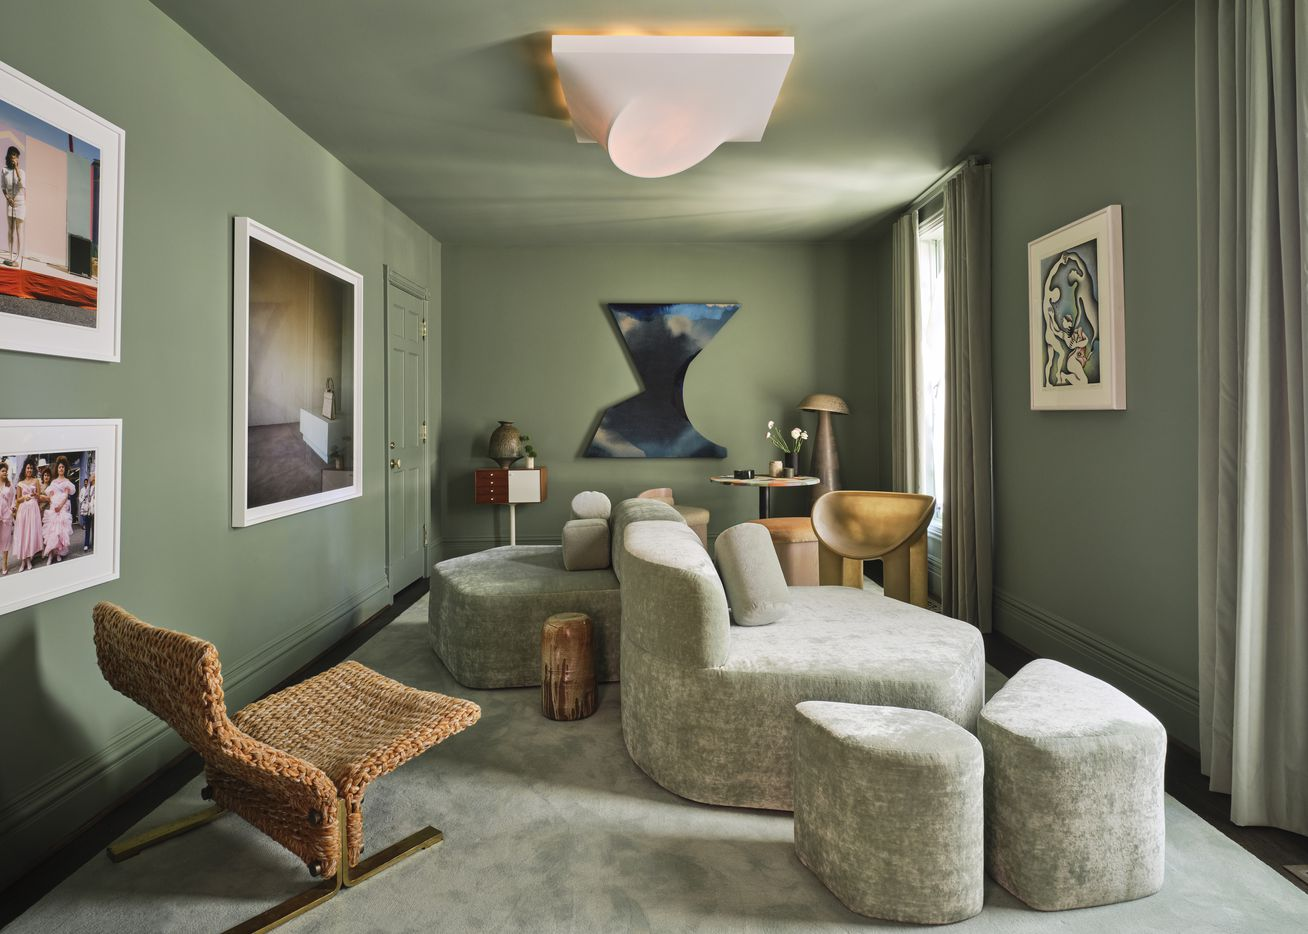 Studio Michael Hilal designed one of the downstairs studies for the 2021 Kips Bay Decorator Show House Dallas. The design was inspired by the late 70s and early 80s U.S. Southwest, according to a press release, and has natural wood tones, celadon tones and earthy ceramics.